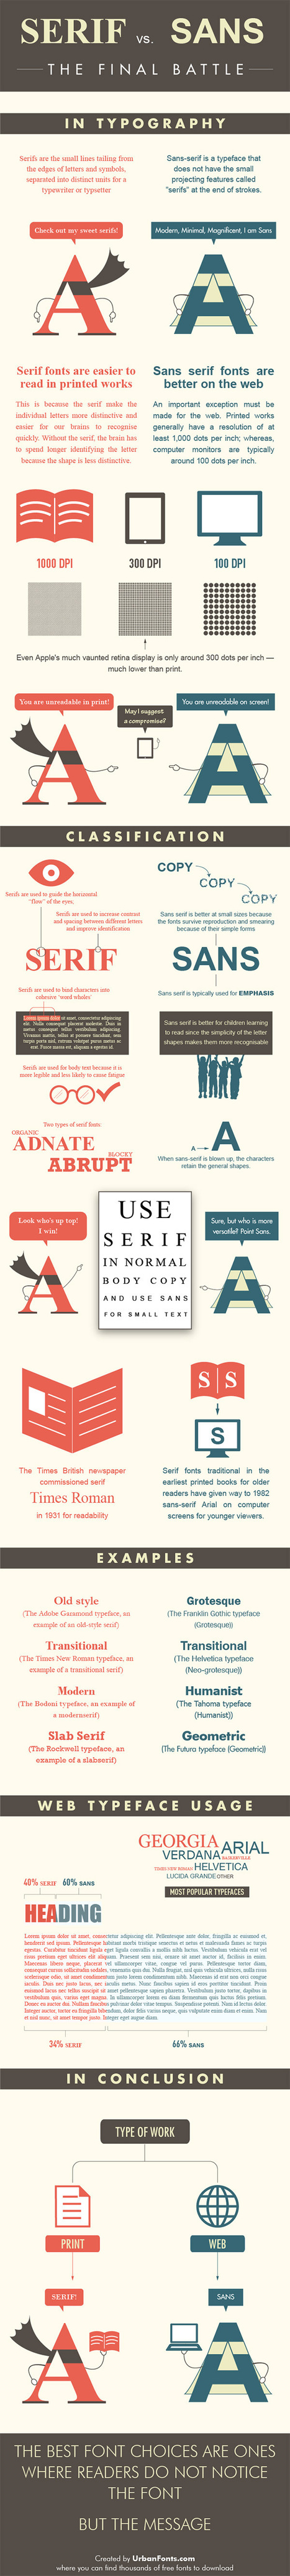 Serif vs Sans: The Final Battle In Typography [Infographic] | The Best Infographics | Scoop.it